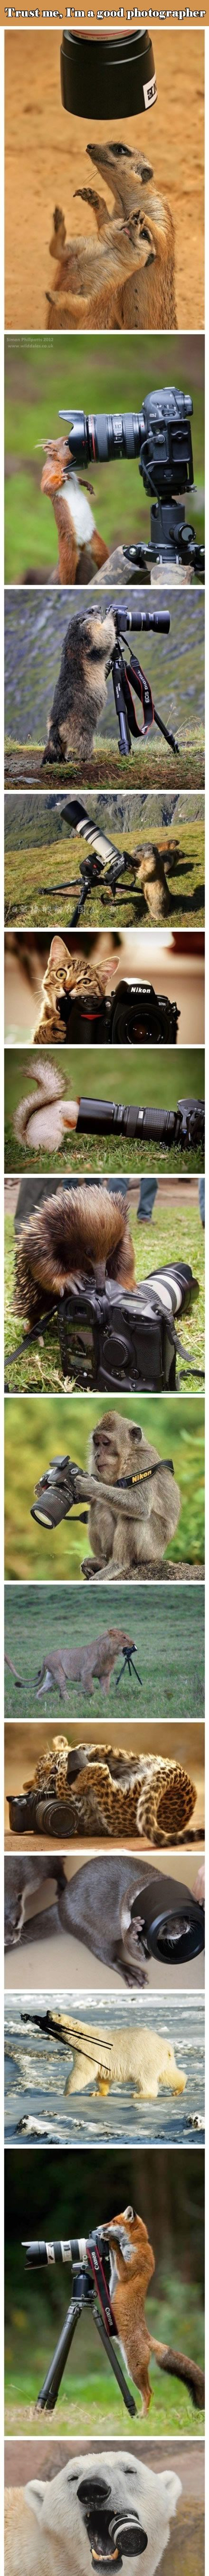 Animals and cameras.     Awe! The monkey with the Nikon is so cute OMG!! Haha! Awe!